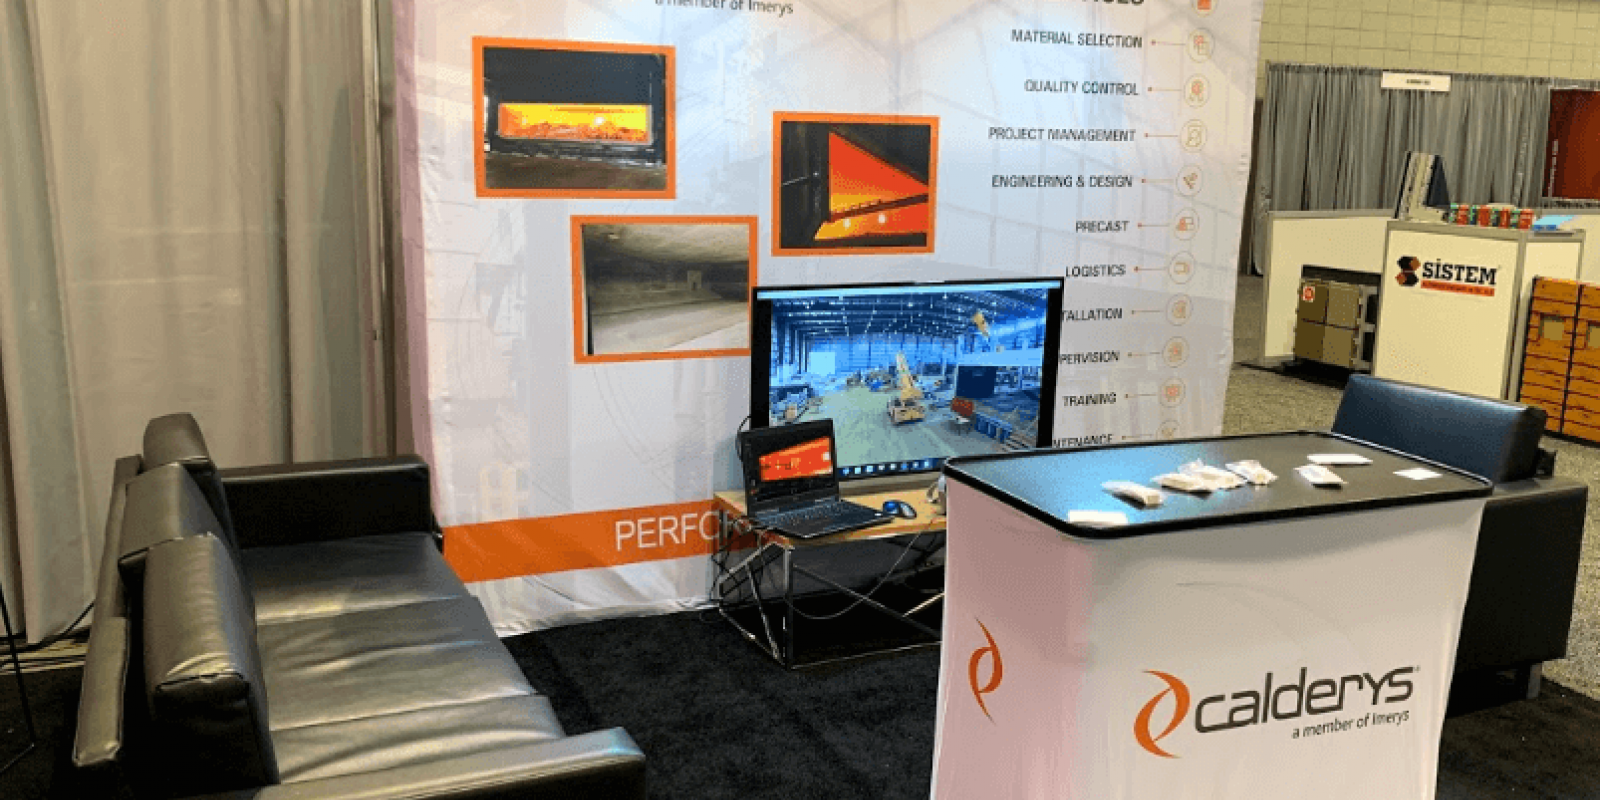 Calderys booth at Aluminum USA 2019 Trade Show